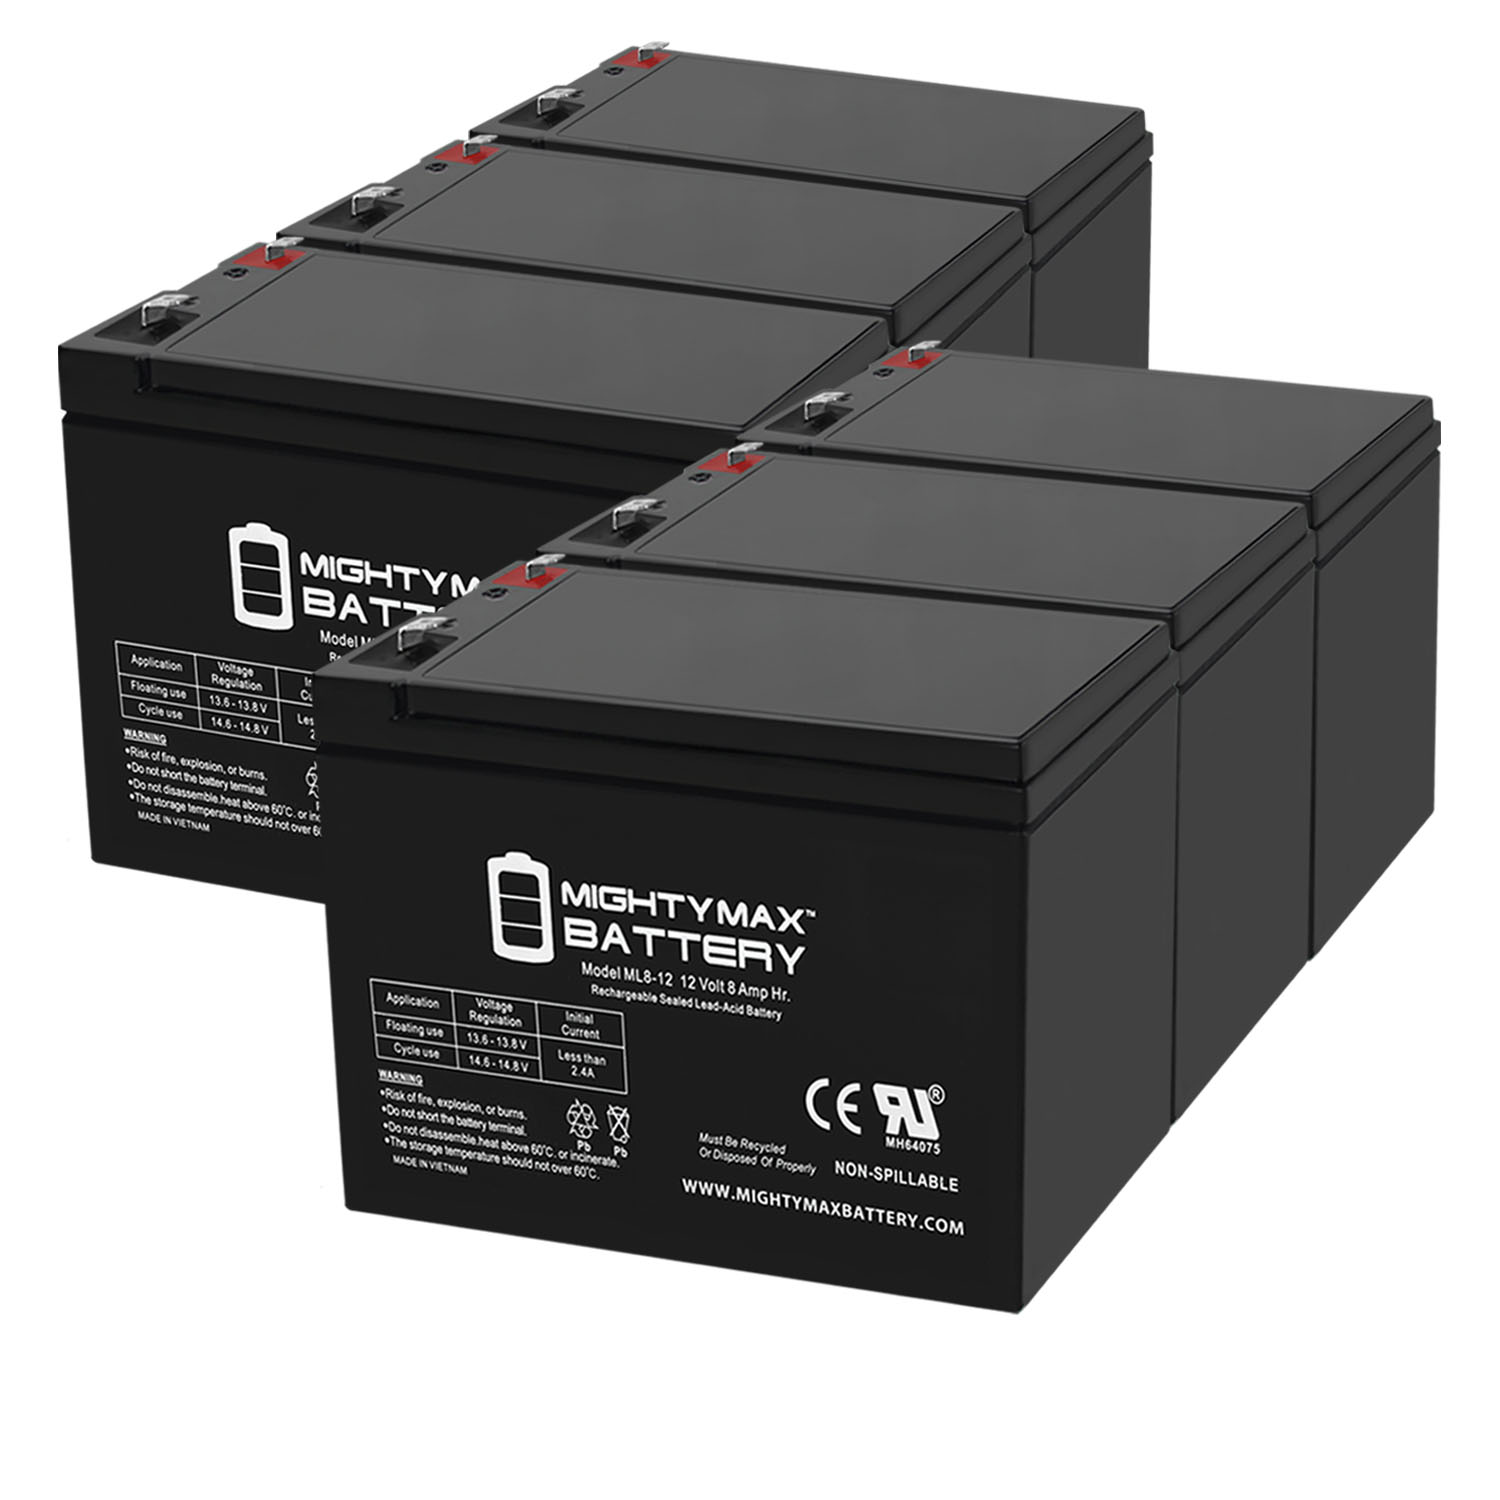 ML8-12 - 12 VOLT 8 AH SLA BATTERY - 6 Pack